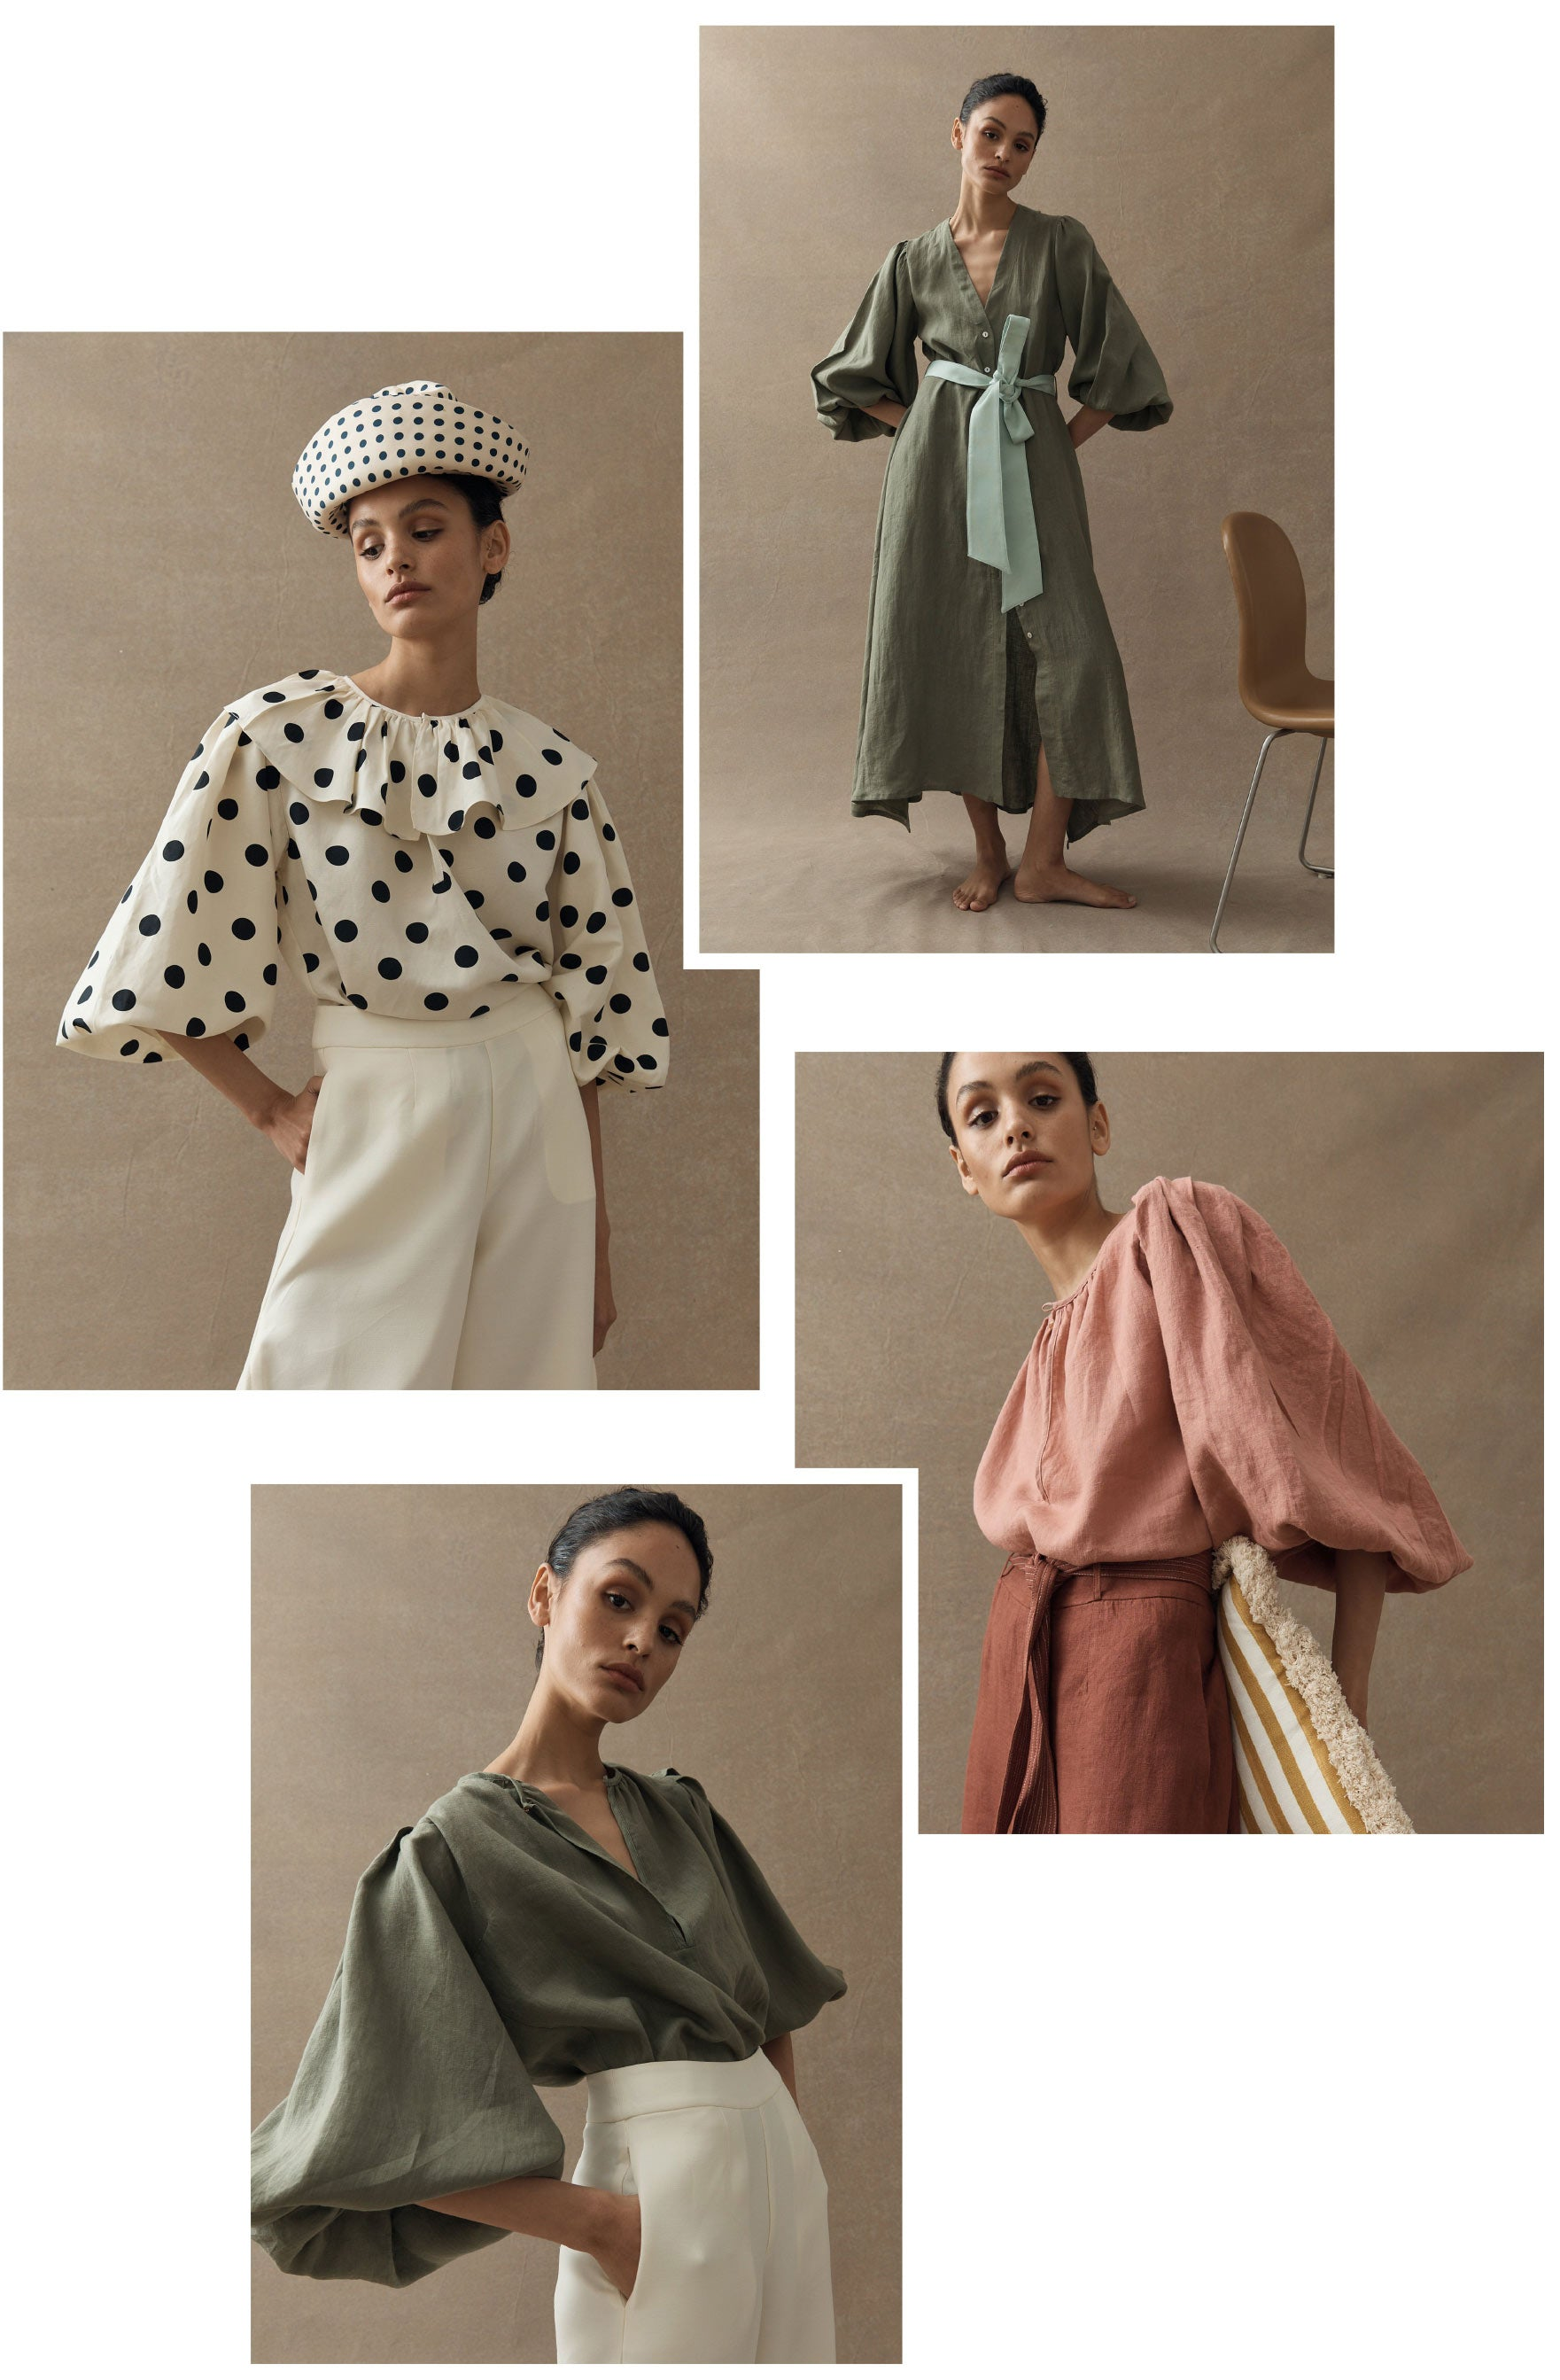 Sarah-Jane Clarke is the namesake label founded in 2018 by original co-founder of internationally acclaimed denim and ready-to-wear fashion house sass & bide.